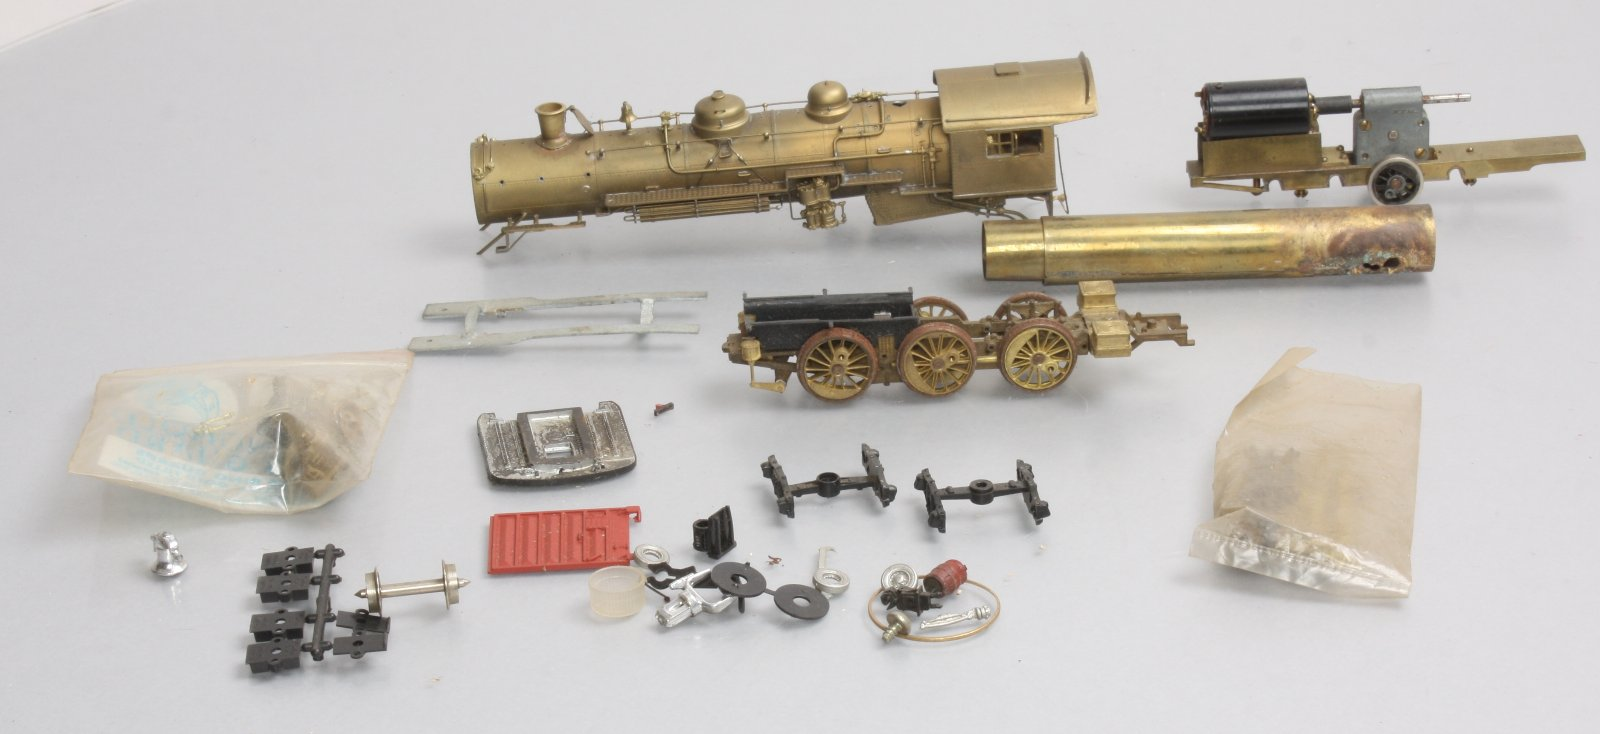 Buy HO Scale Brass Steam Locomotive Kit | Trainz Auctions